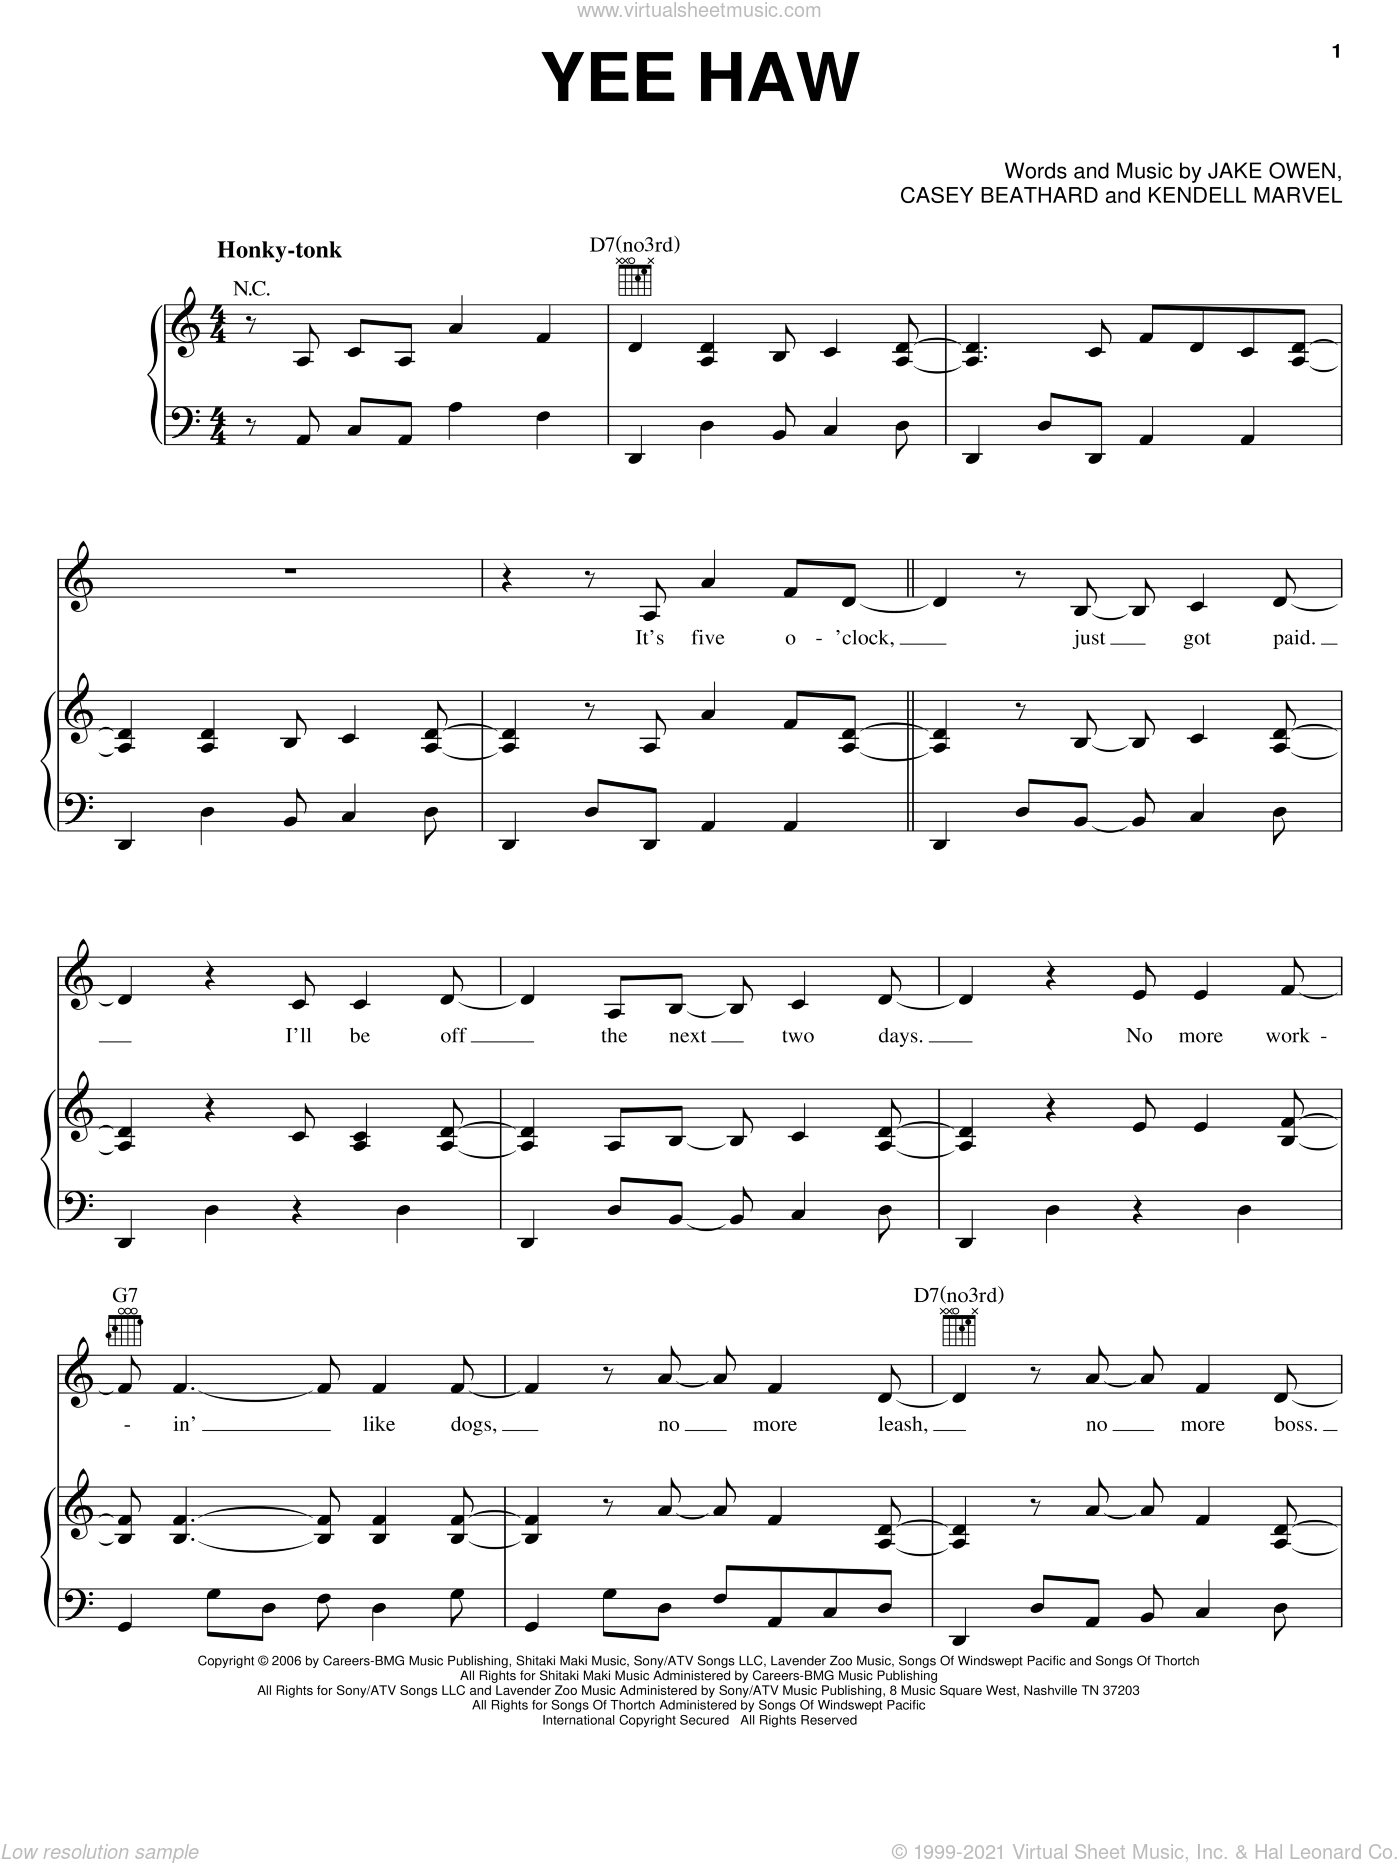 Yee Haw sheet music for voice, piano or guitar by Kendell Marvell, Casey Beathard and Jake Owen. Score Image Preview.